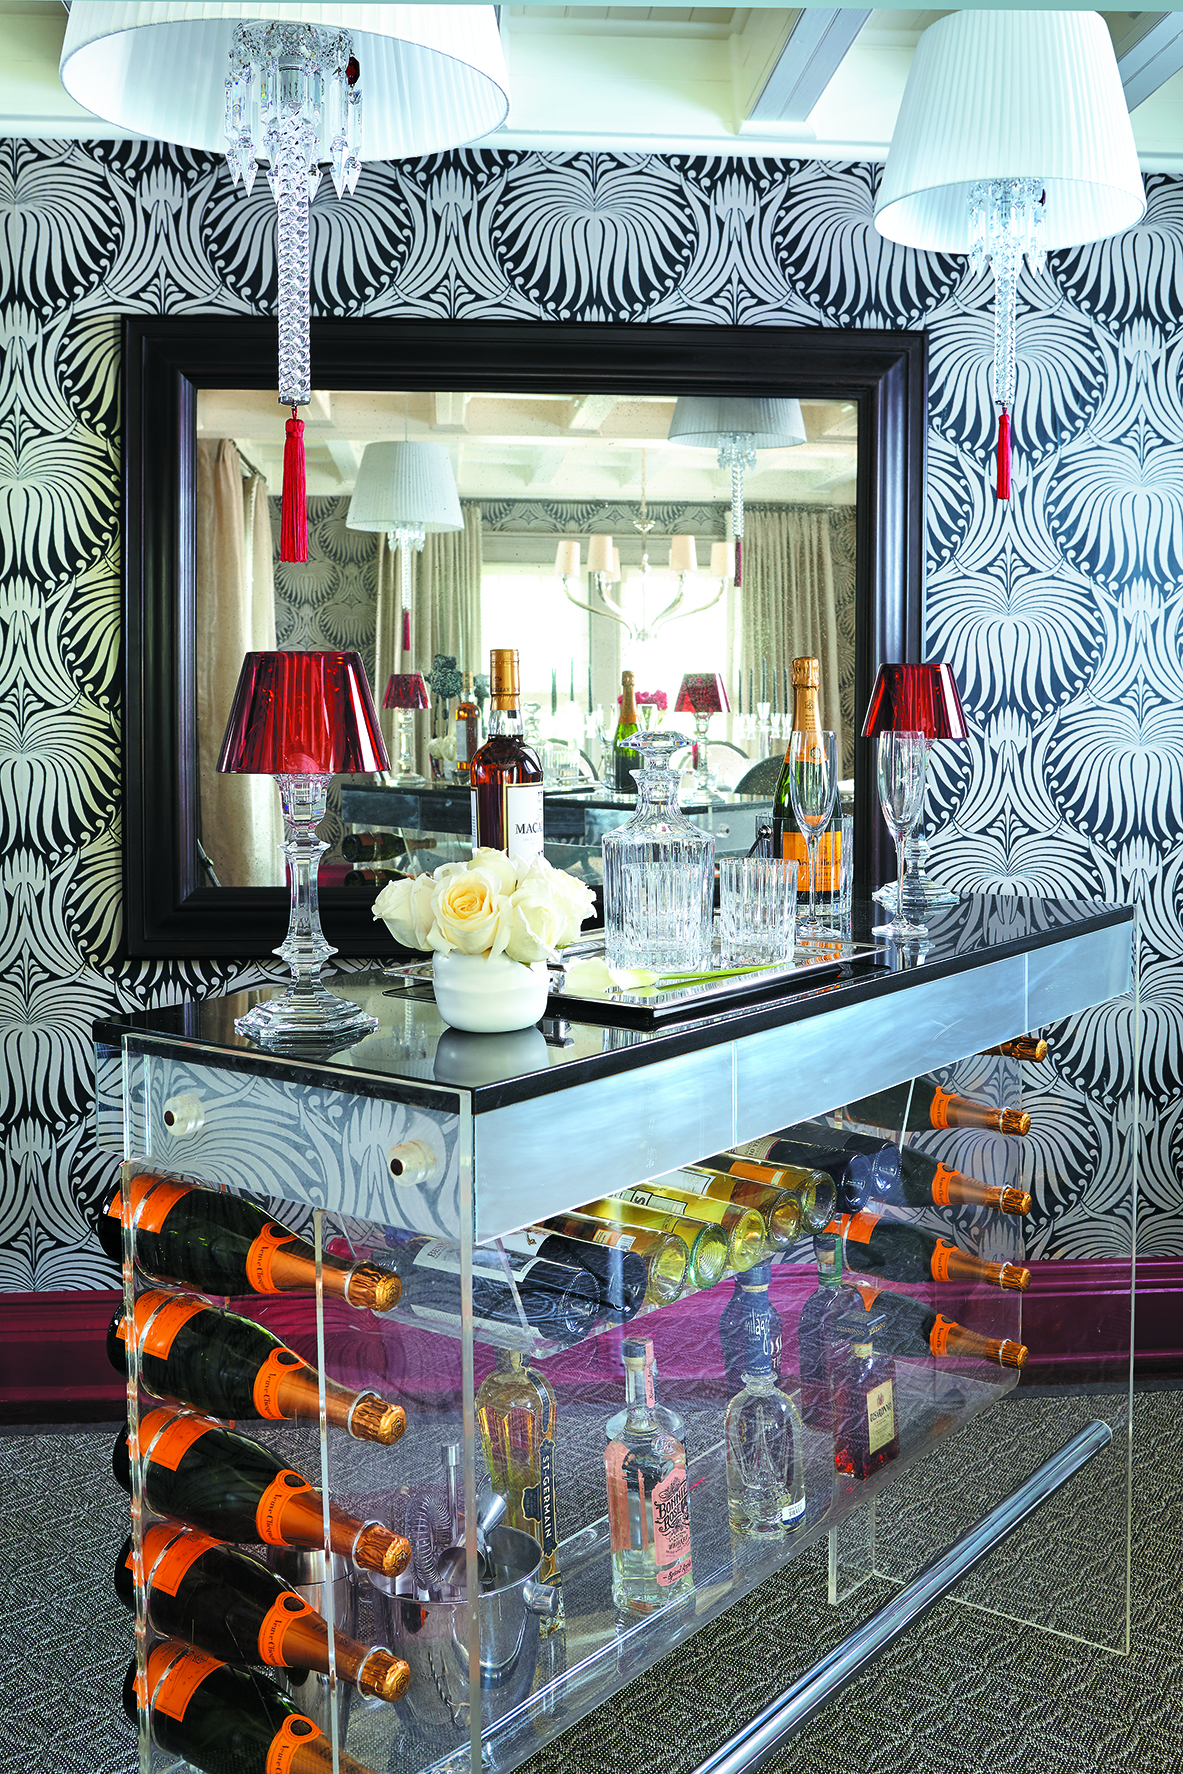 MATERIALS USED: ABSOLUTE BLACK GRANITE BAR TOP, POLISHED PHOTO CREDIT: CTC&G/KEITH SCOTT MORTON AND ERIC RICHARDS